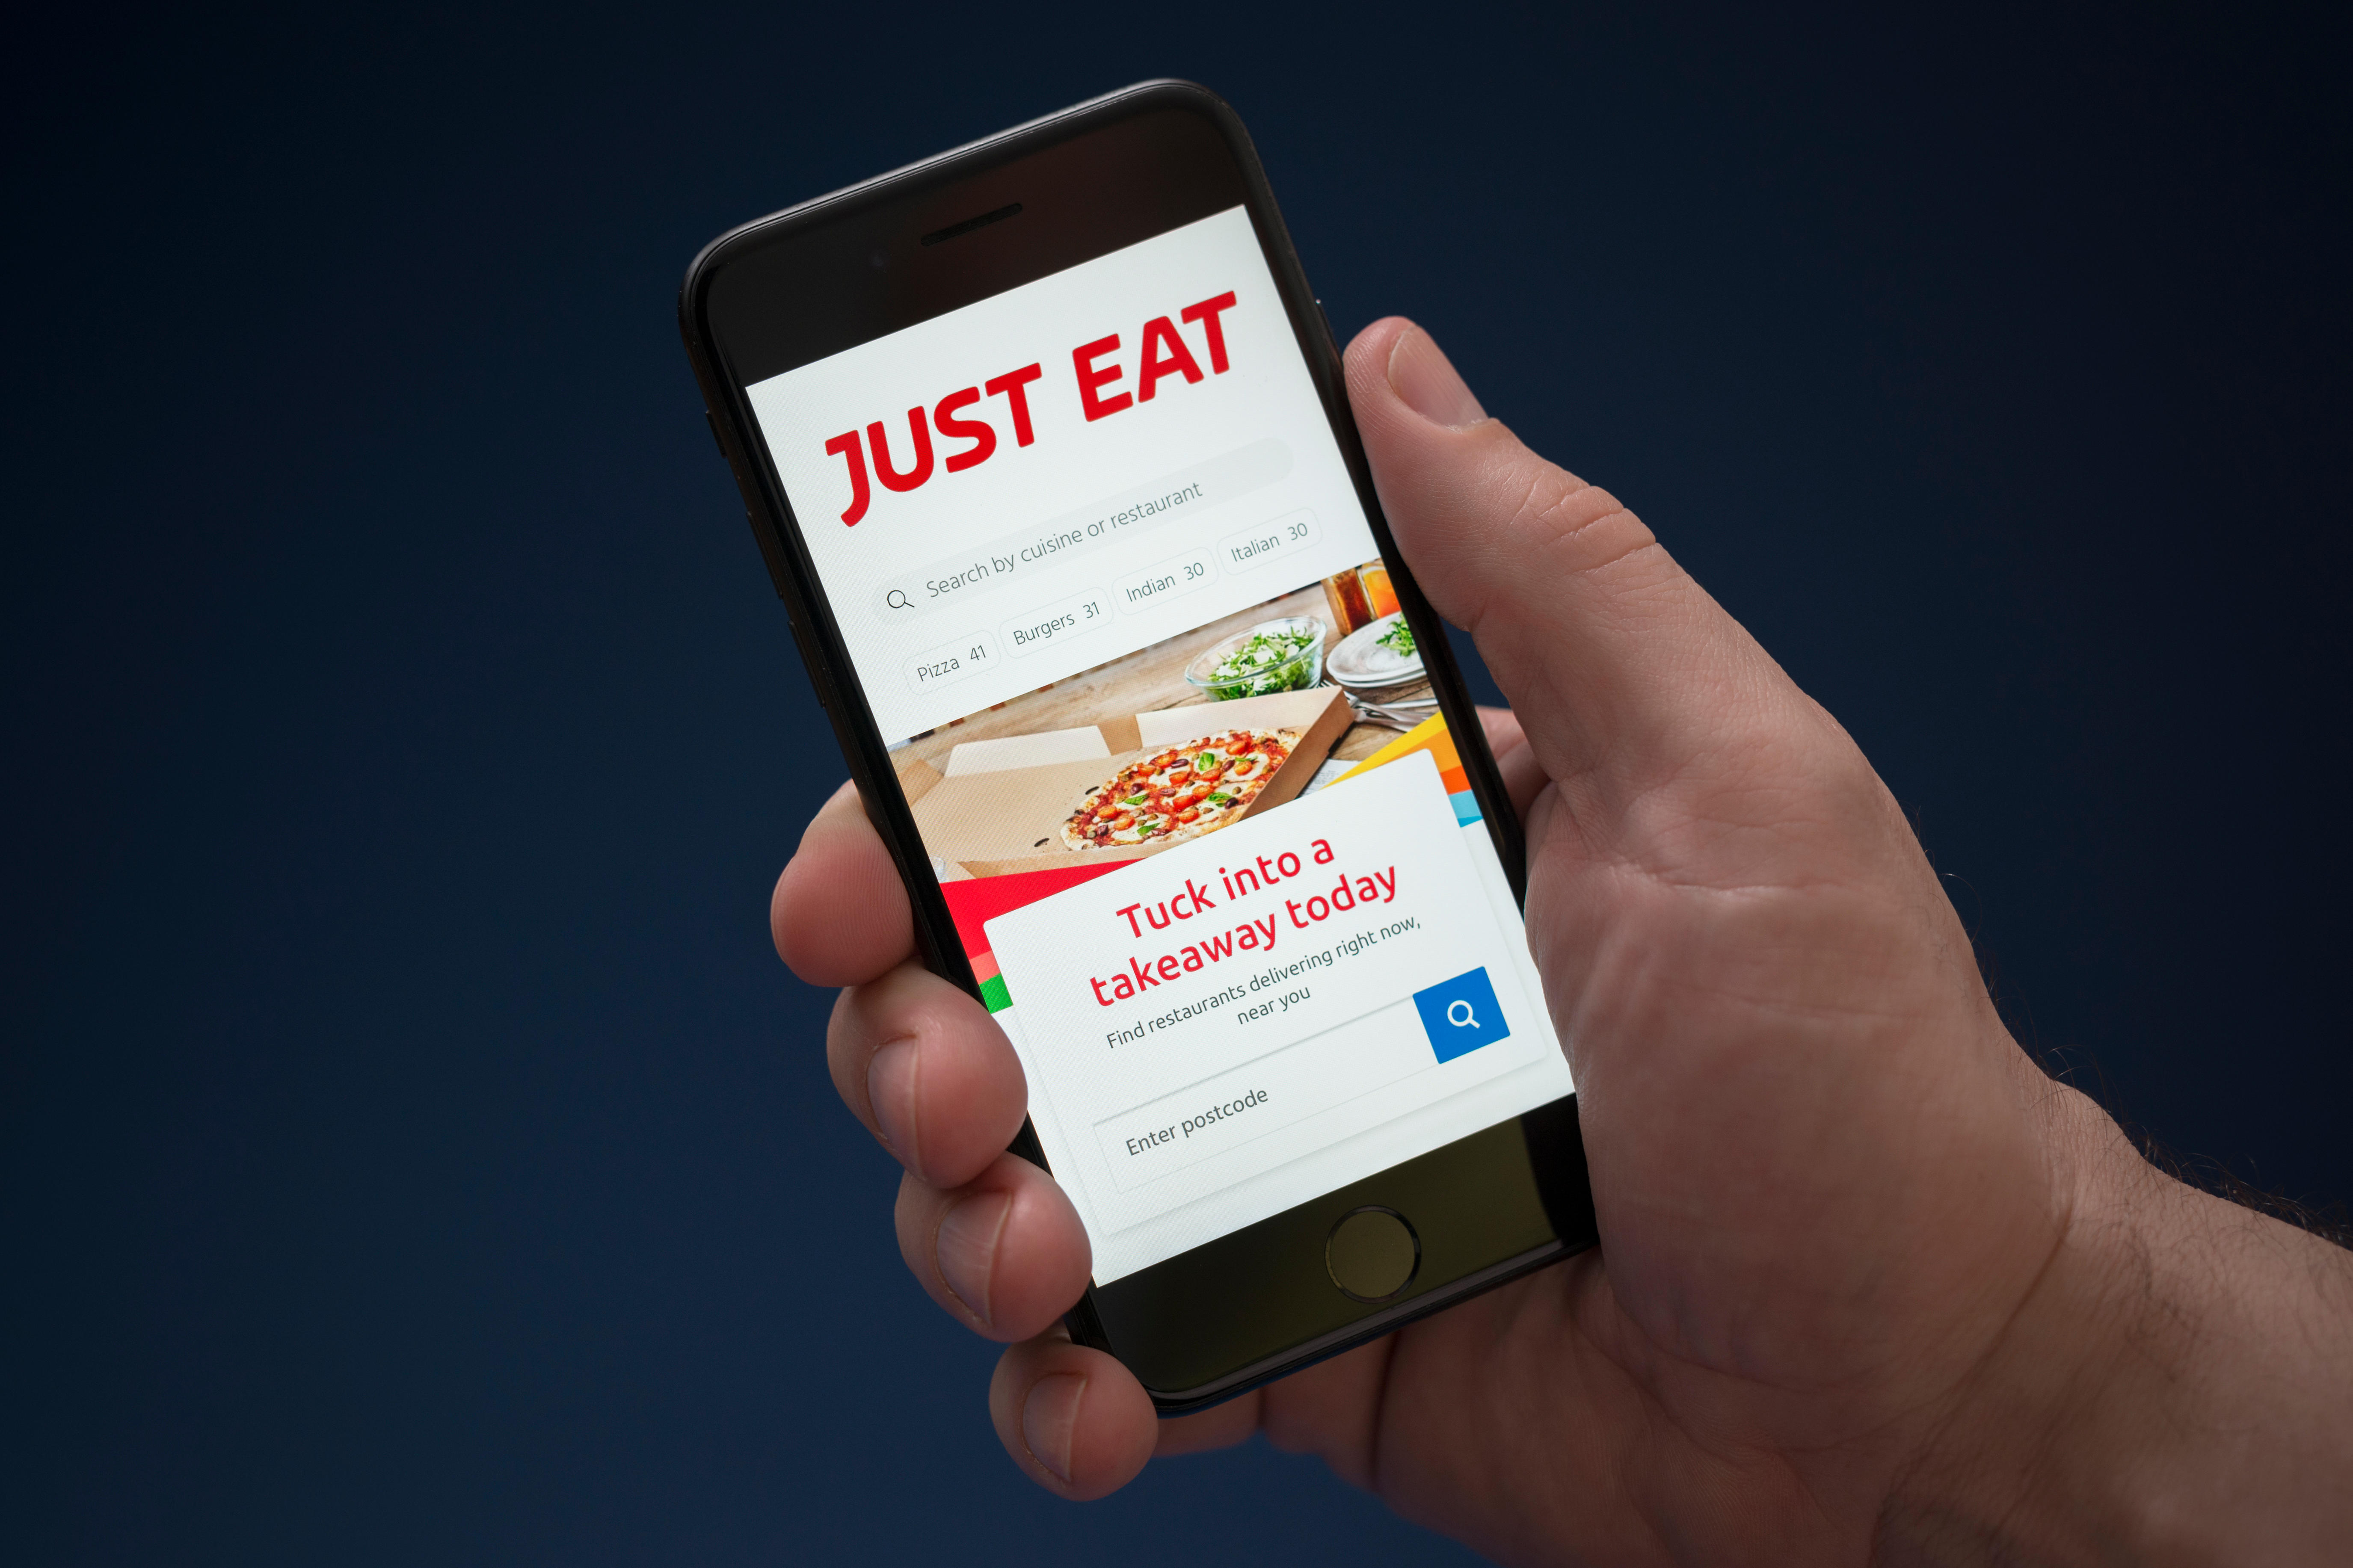 Just Eat mobile app